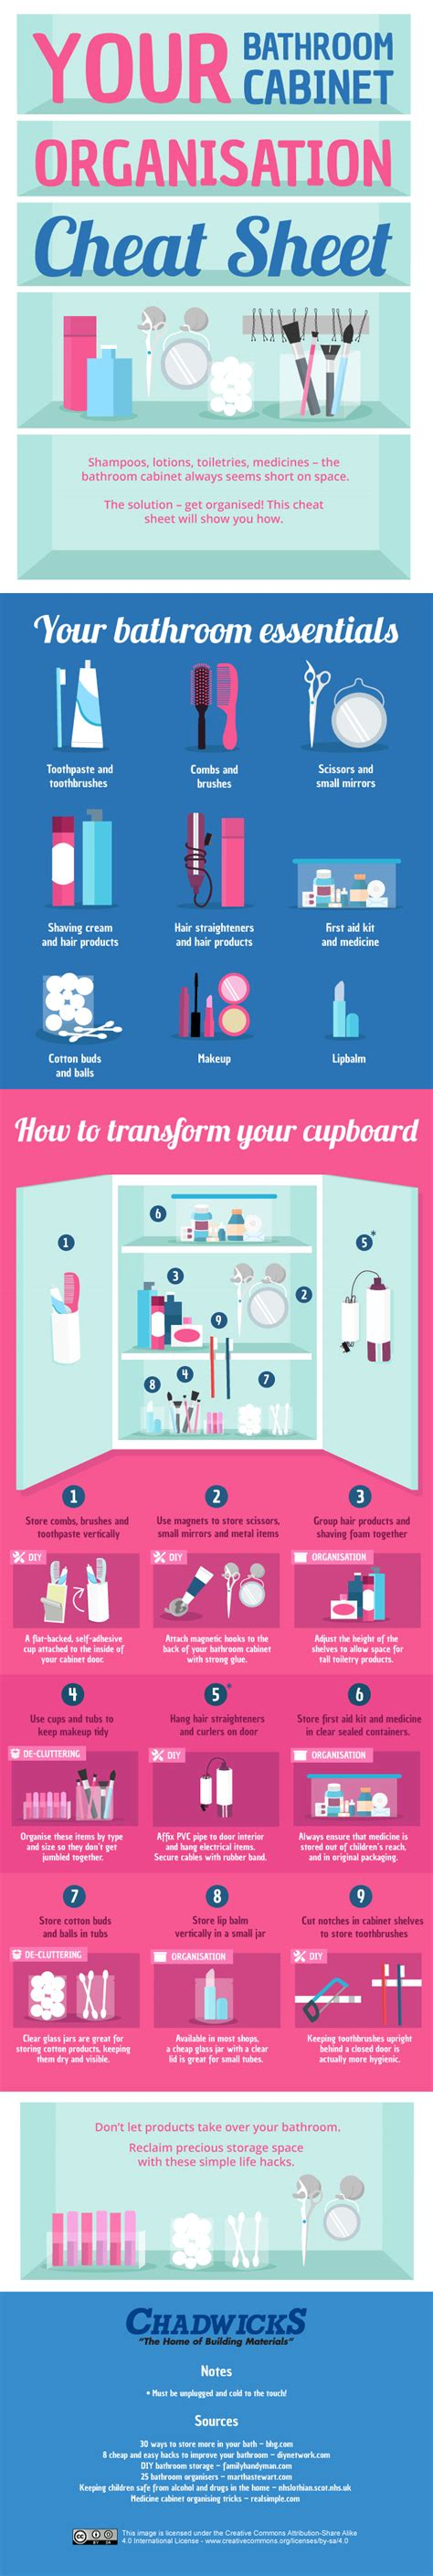 bathroom chart 40 simply marvelous bathroom organization ideas to get rid of all that clutter